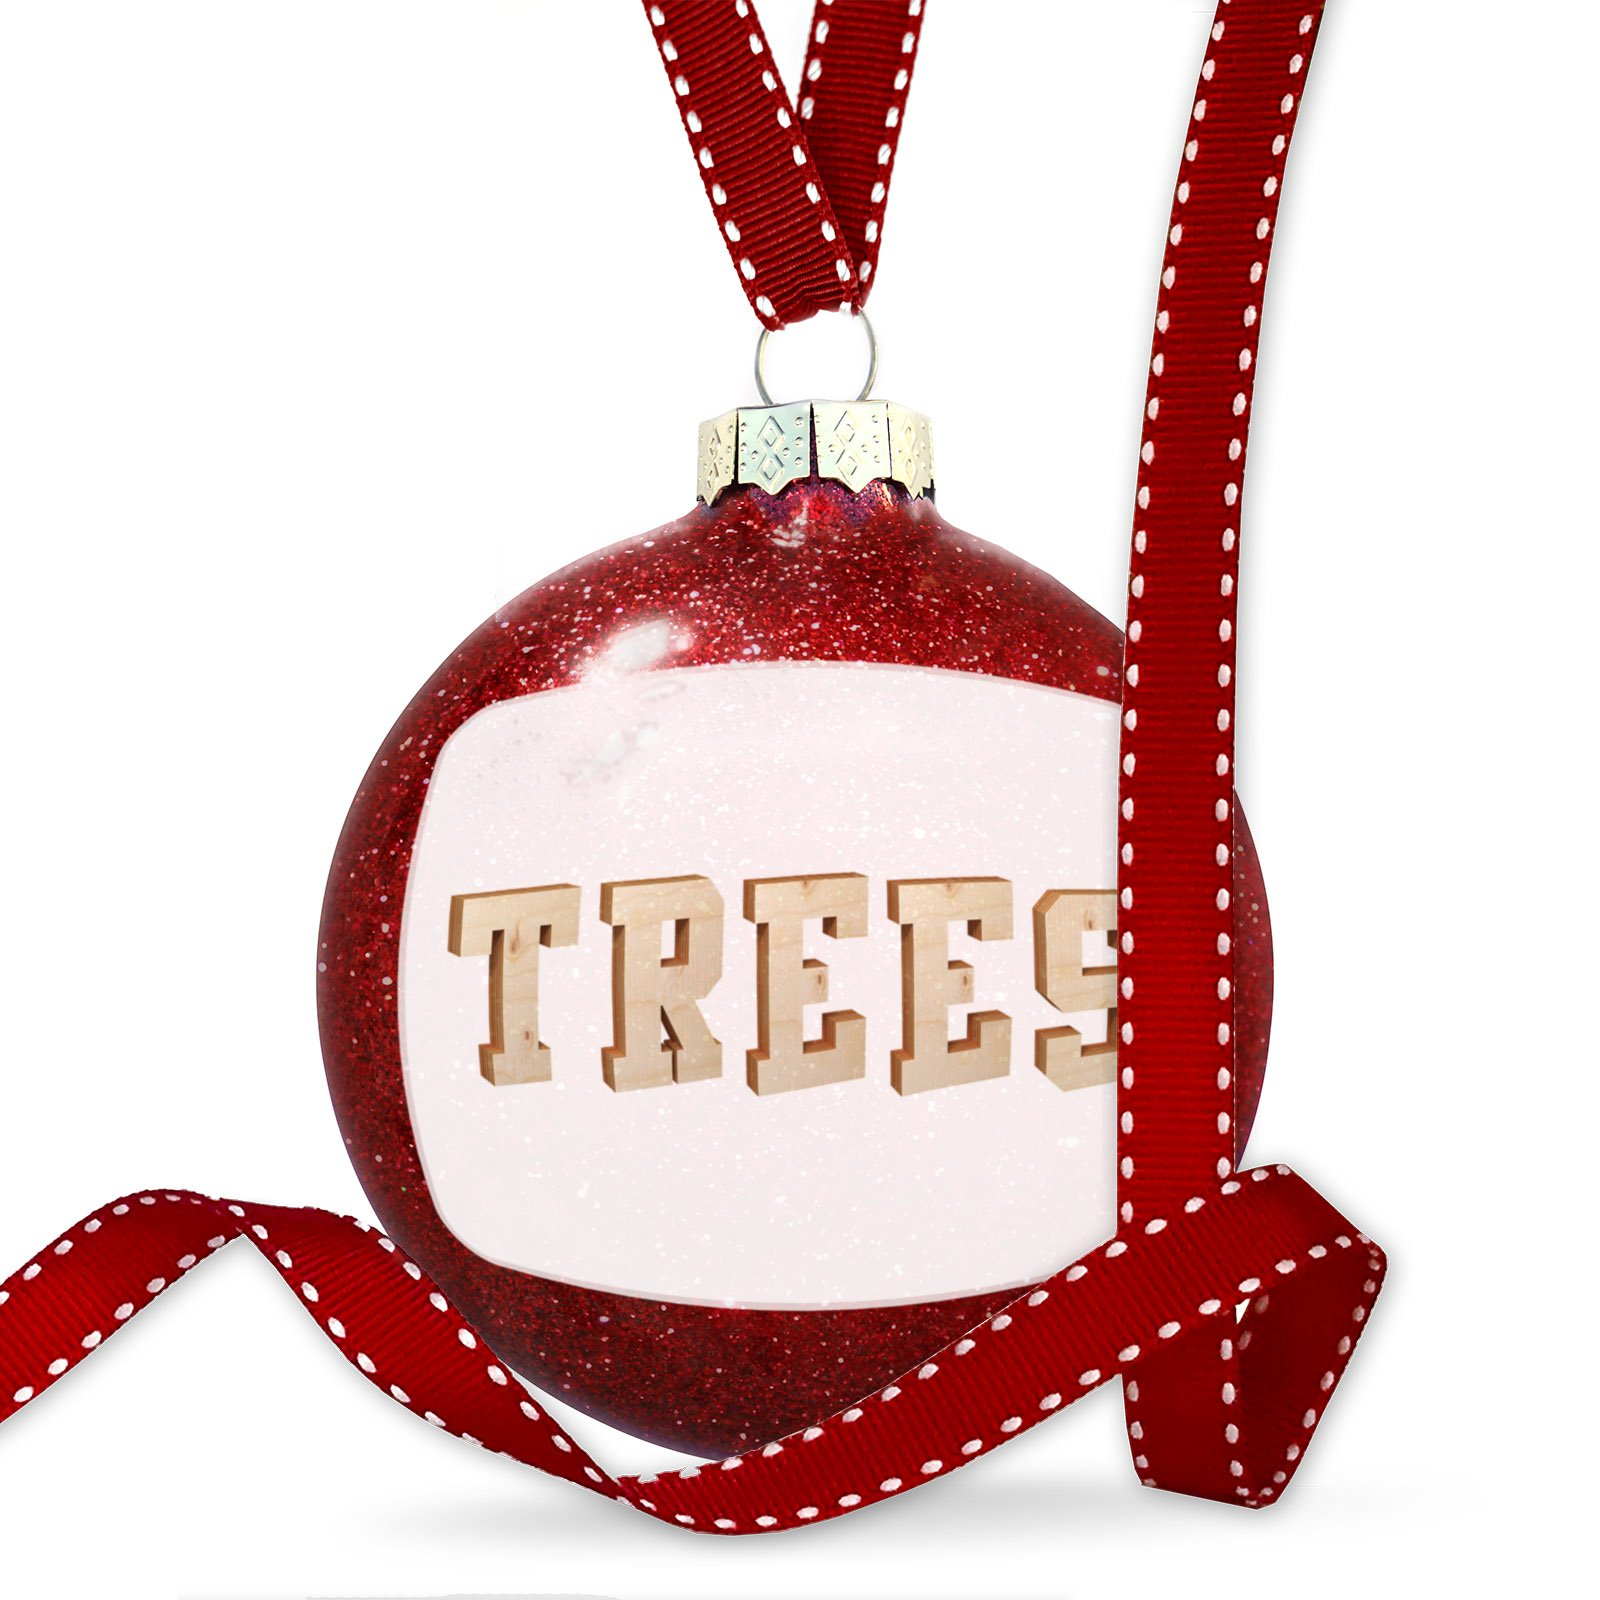 Christmas Decoration Trees Plywood wood Lettering Ornament